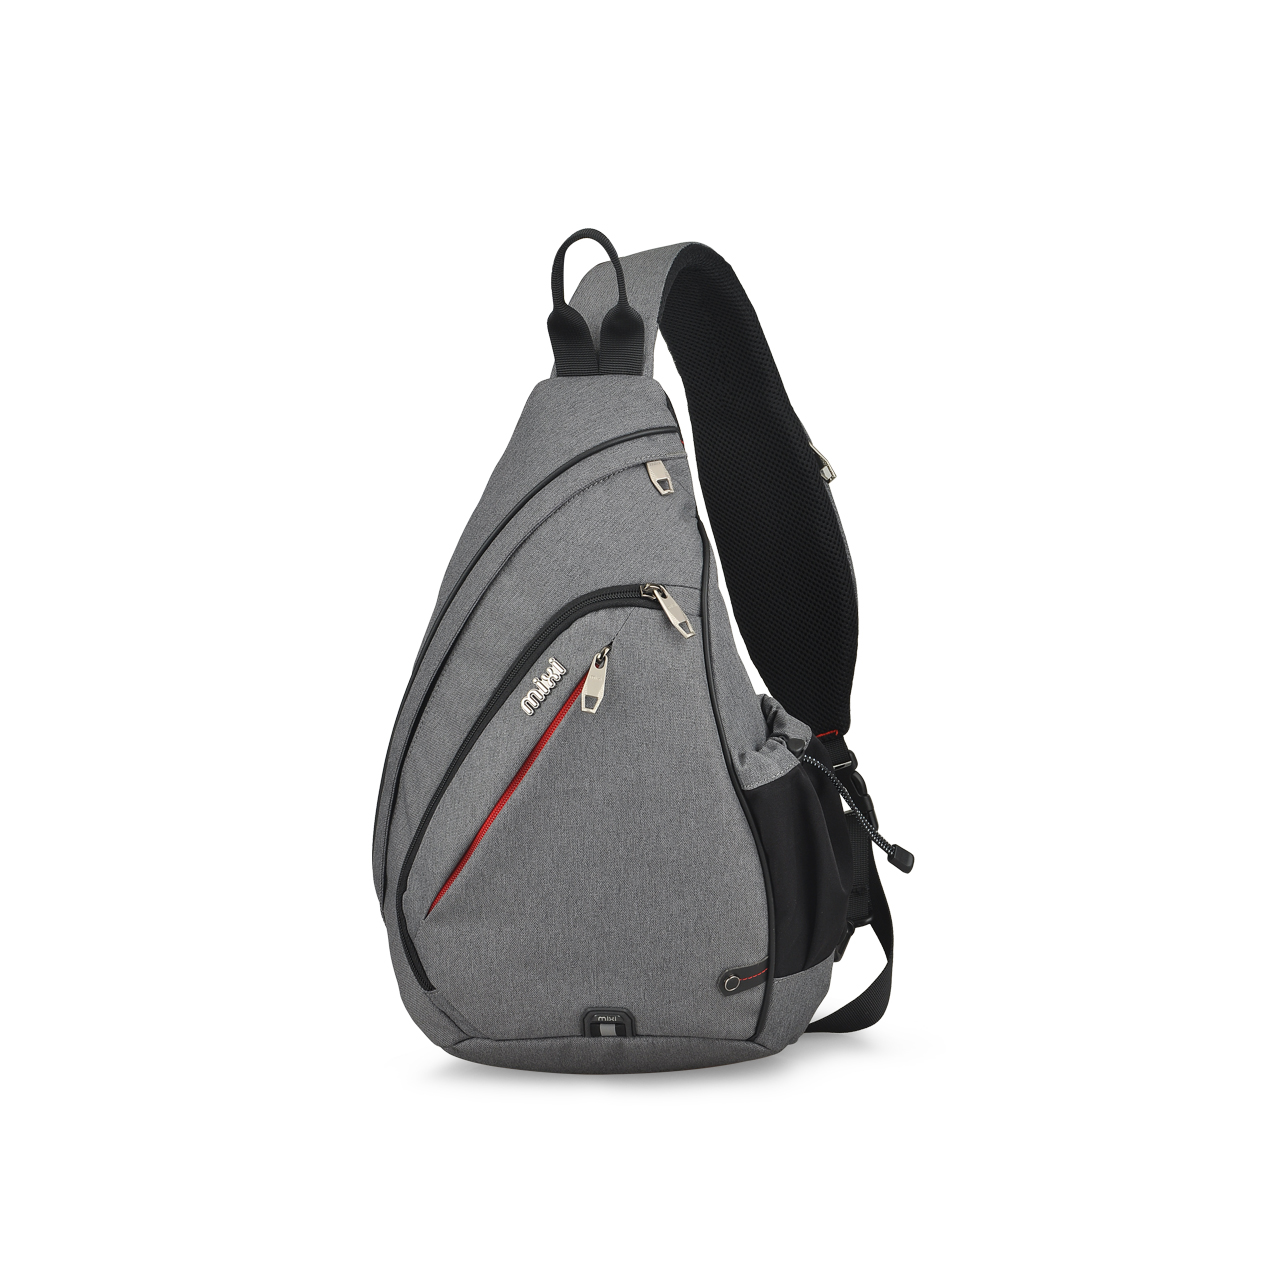 Sling Bag Sling Backpack,Shoulder Chest Crossbody Bag Purse Nylon Lightweight Multicolor Small Daypack Outdoor Chest Bag